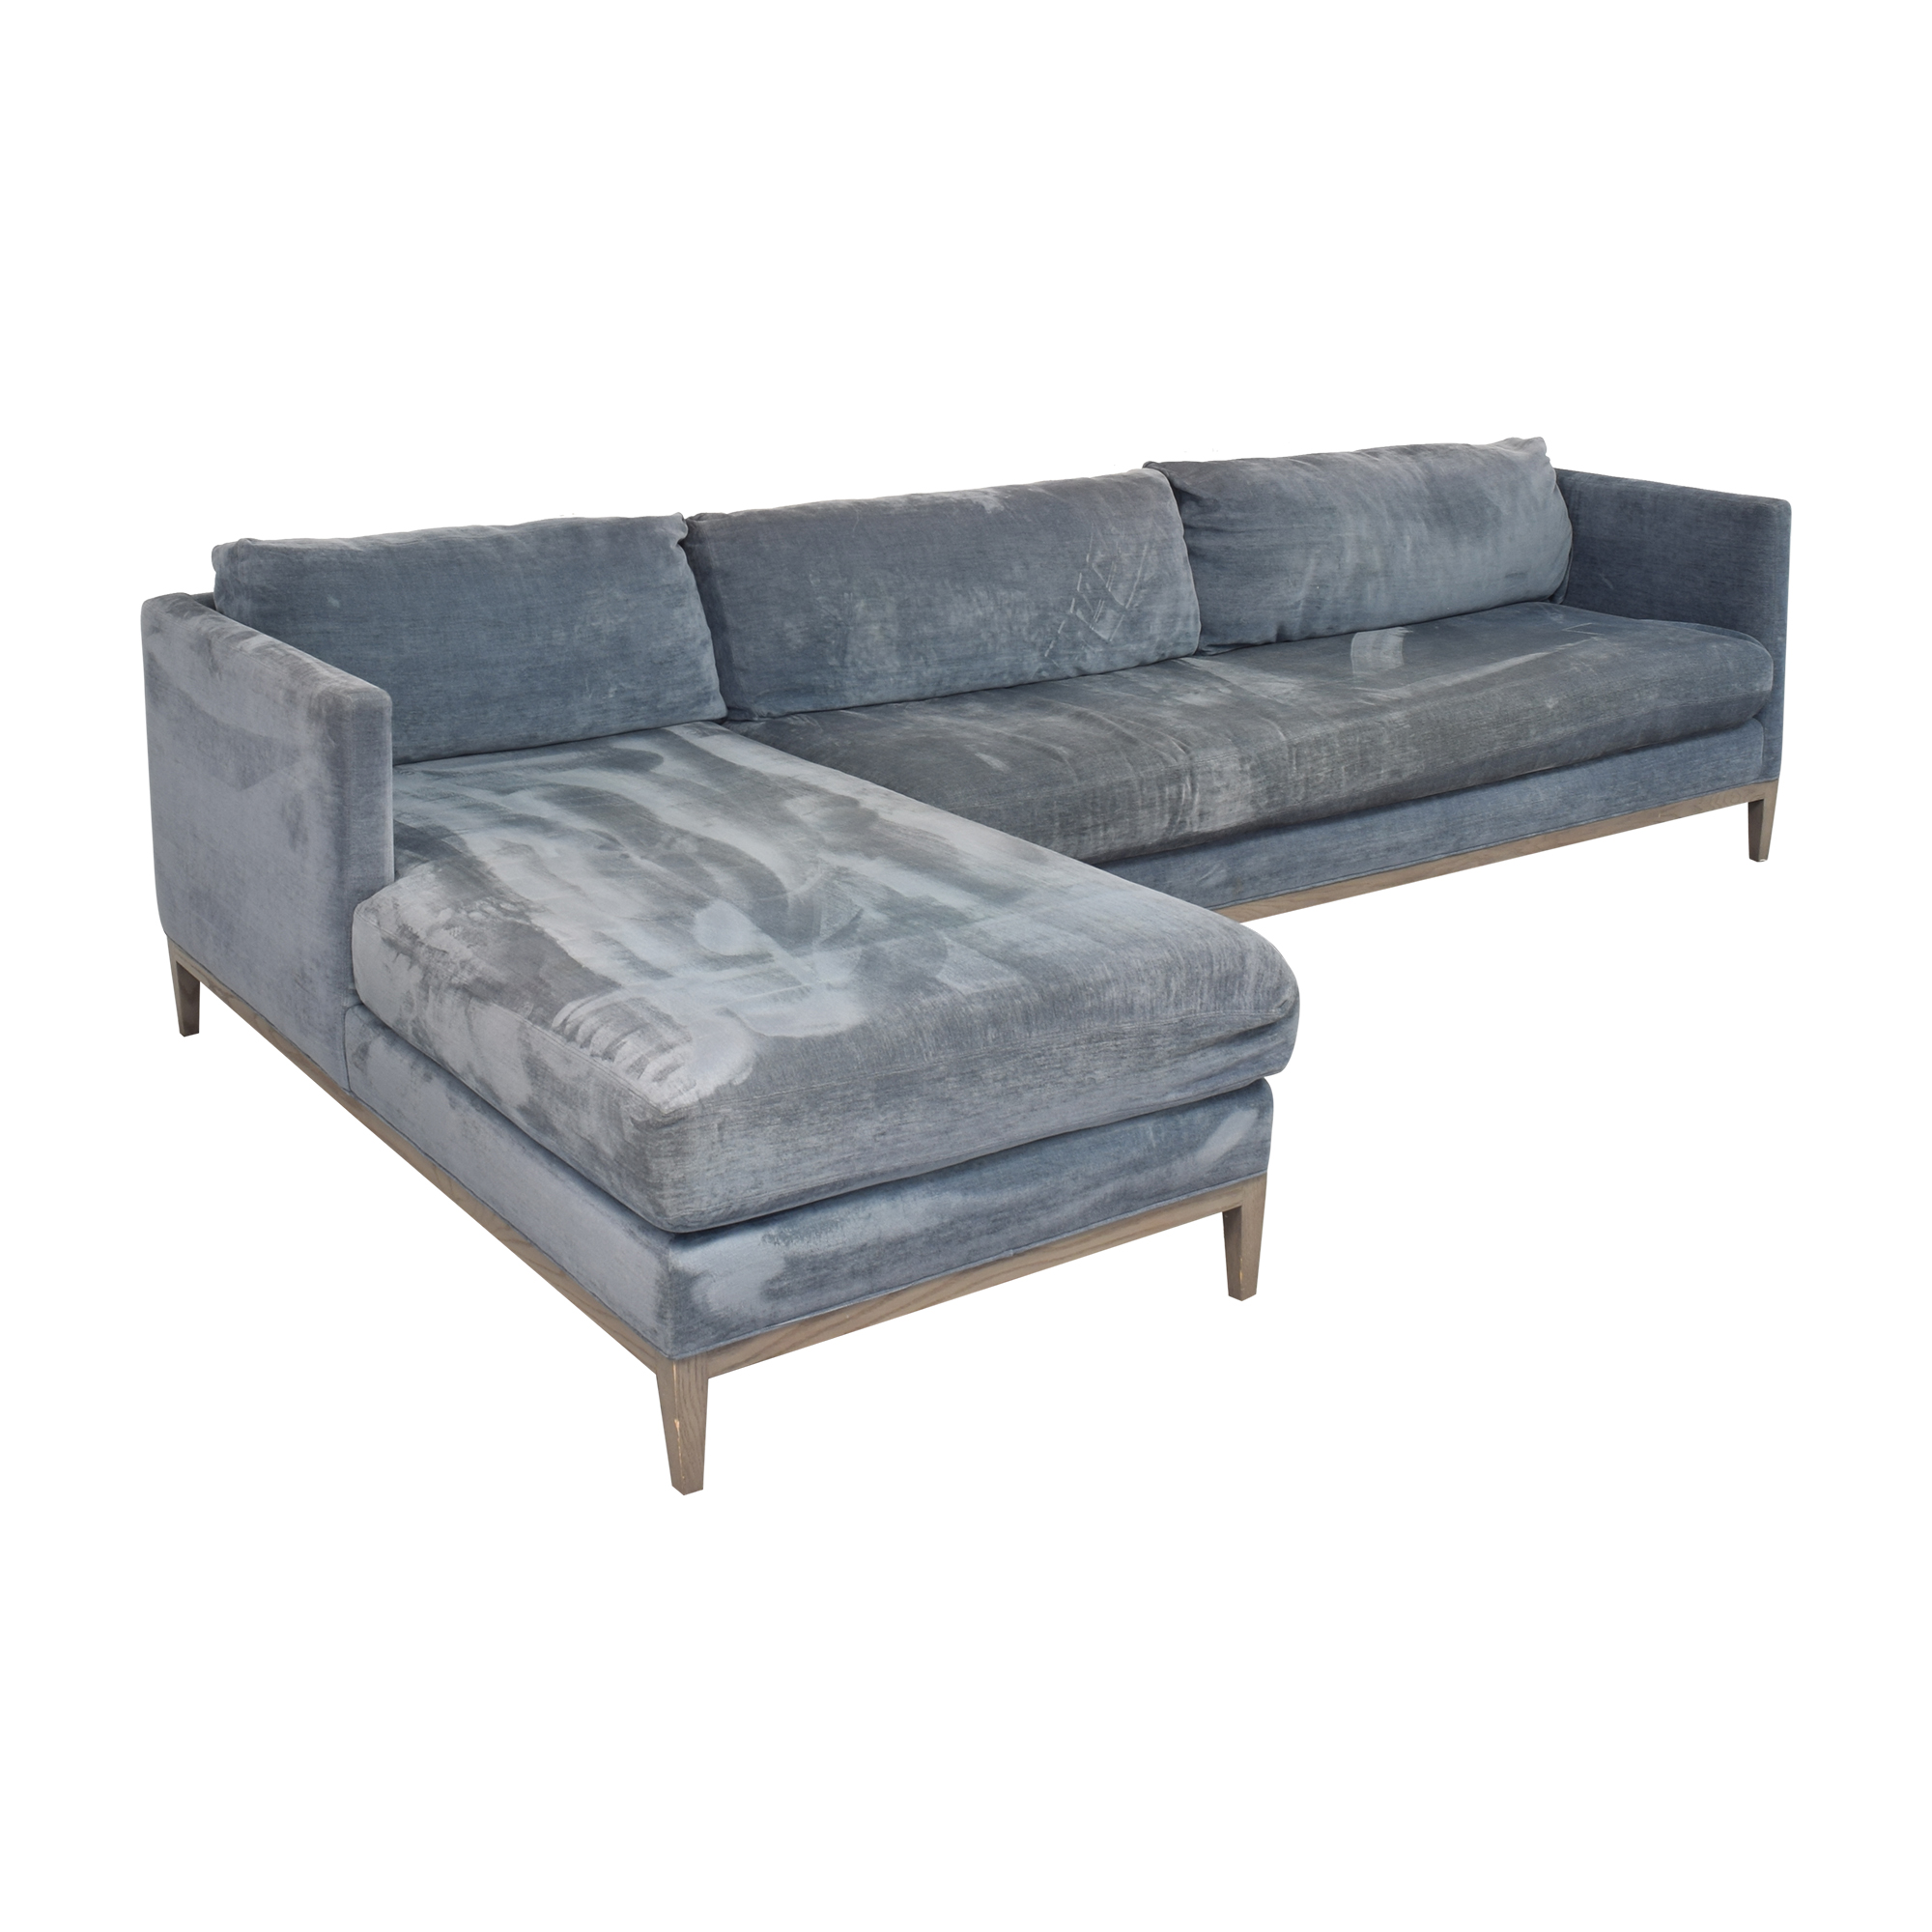 Lee Industries Lee Industries Chaise Sectional Sofa used